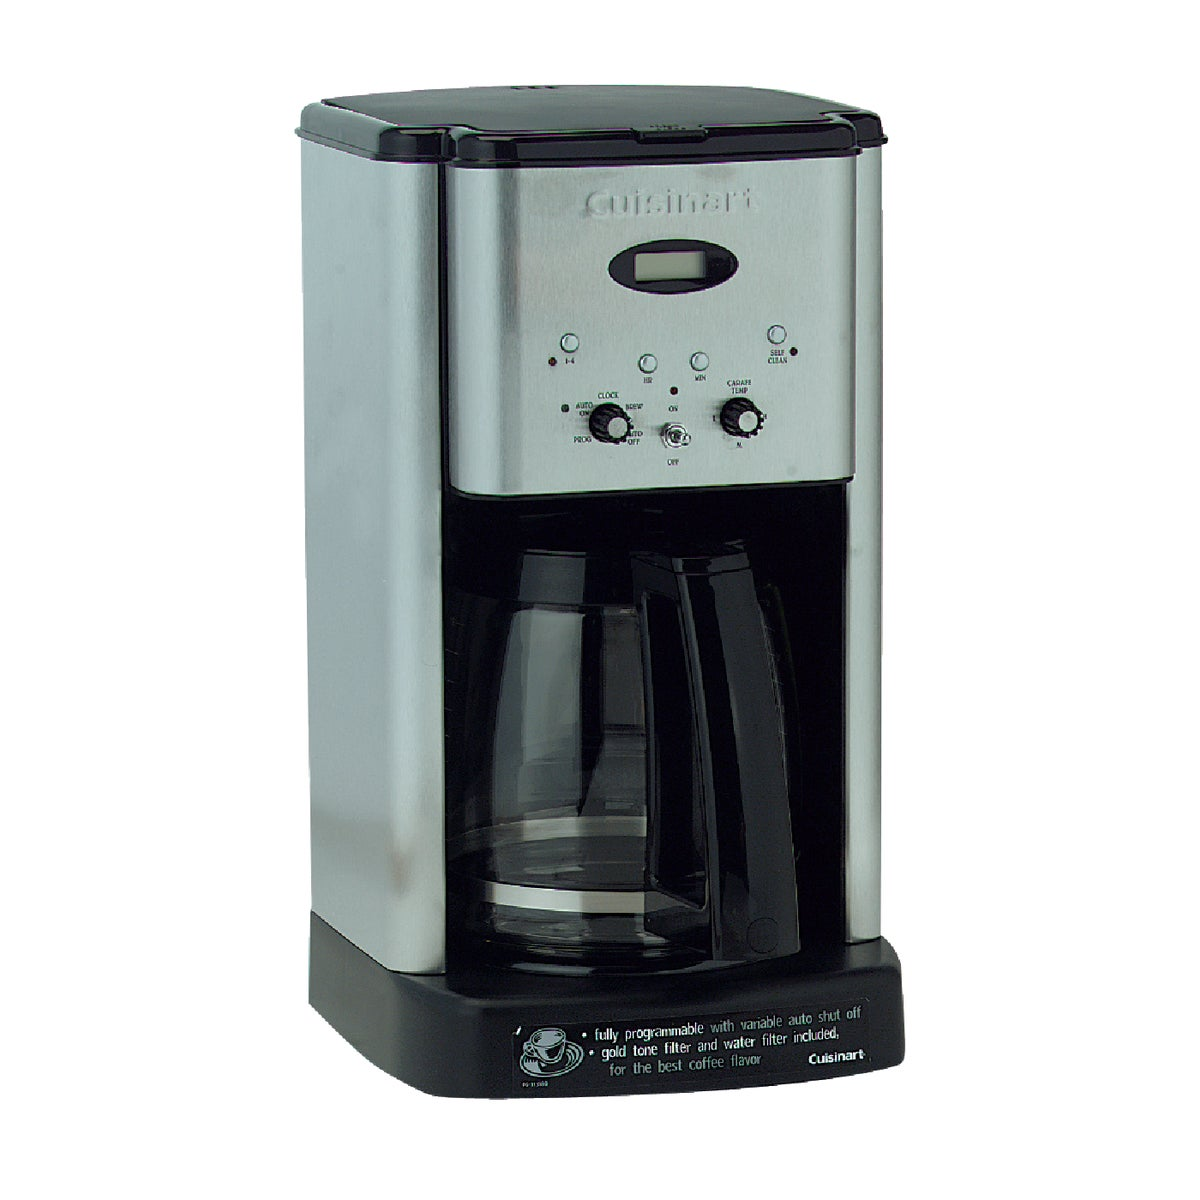 SS BLK 12C COFFEE MAKER - DCC-1200 by Cuisinart